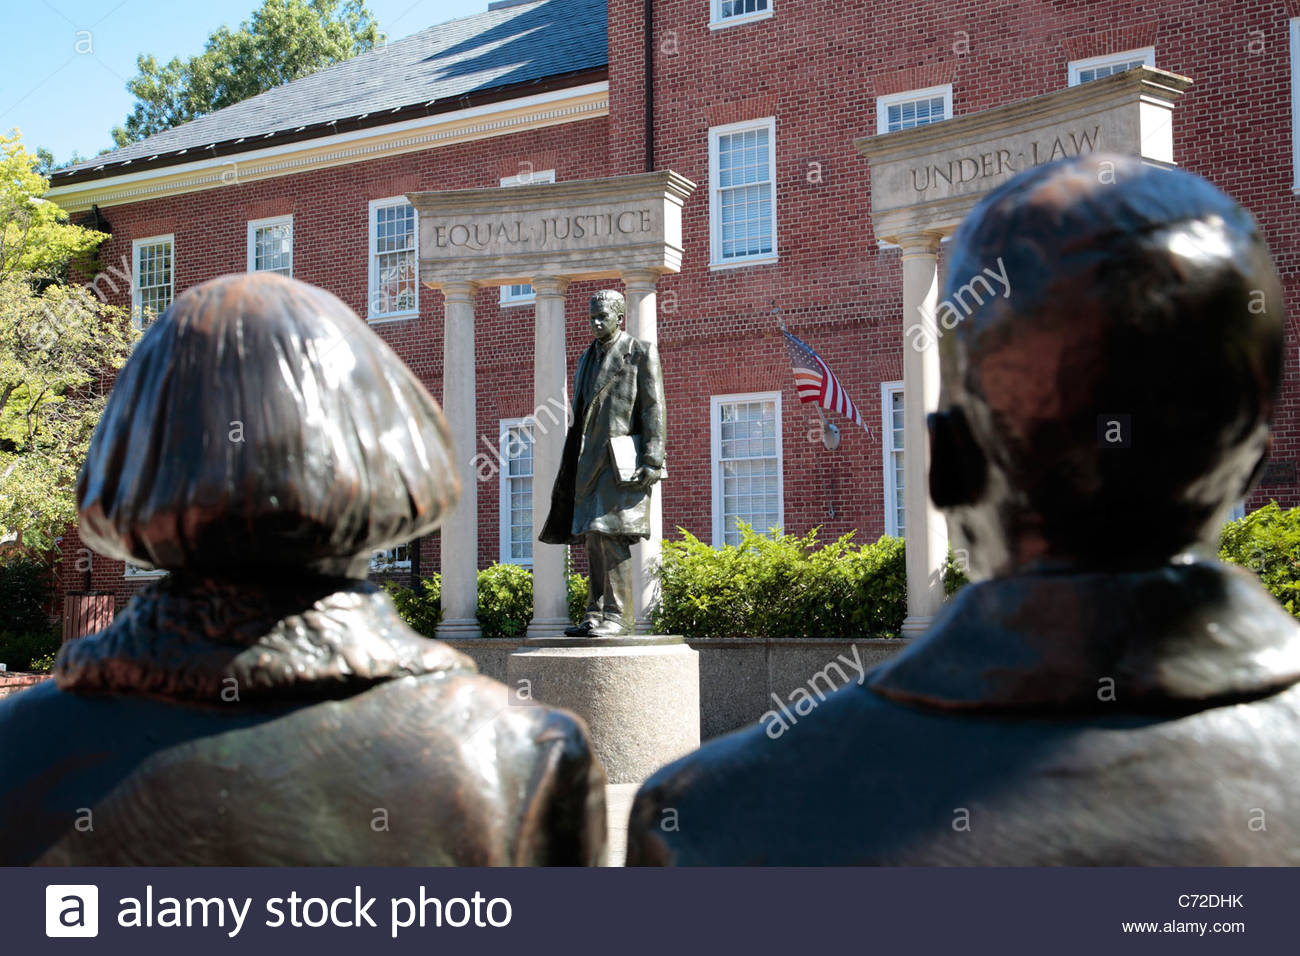 The Thurgood Marshall Memorial in Annapolis, Maryland - Stock Image